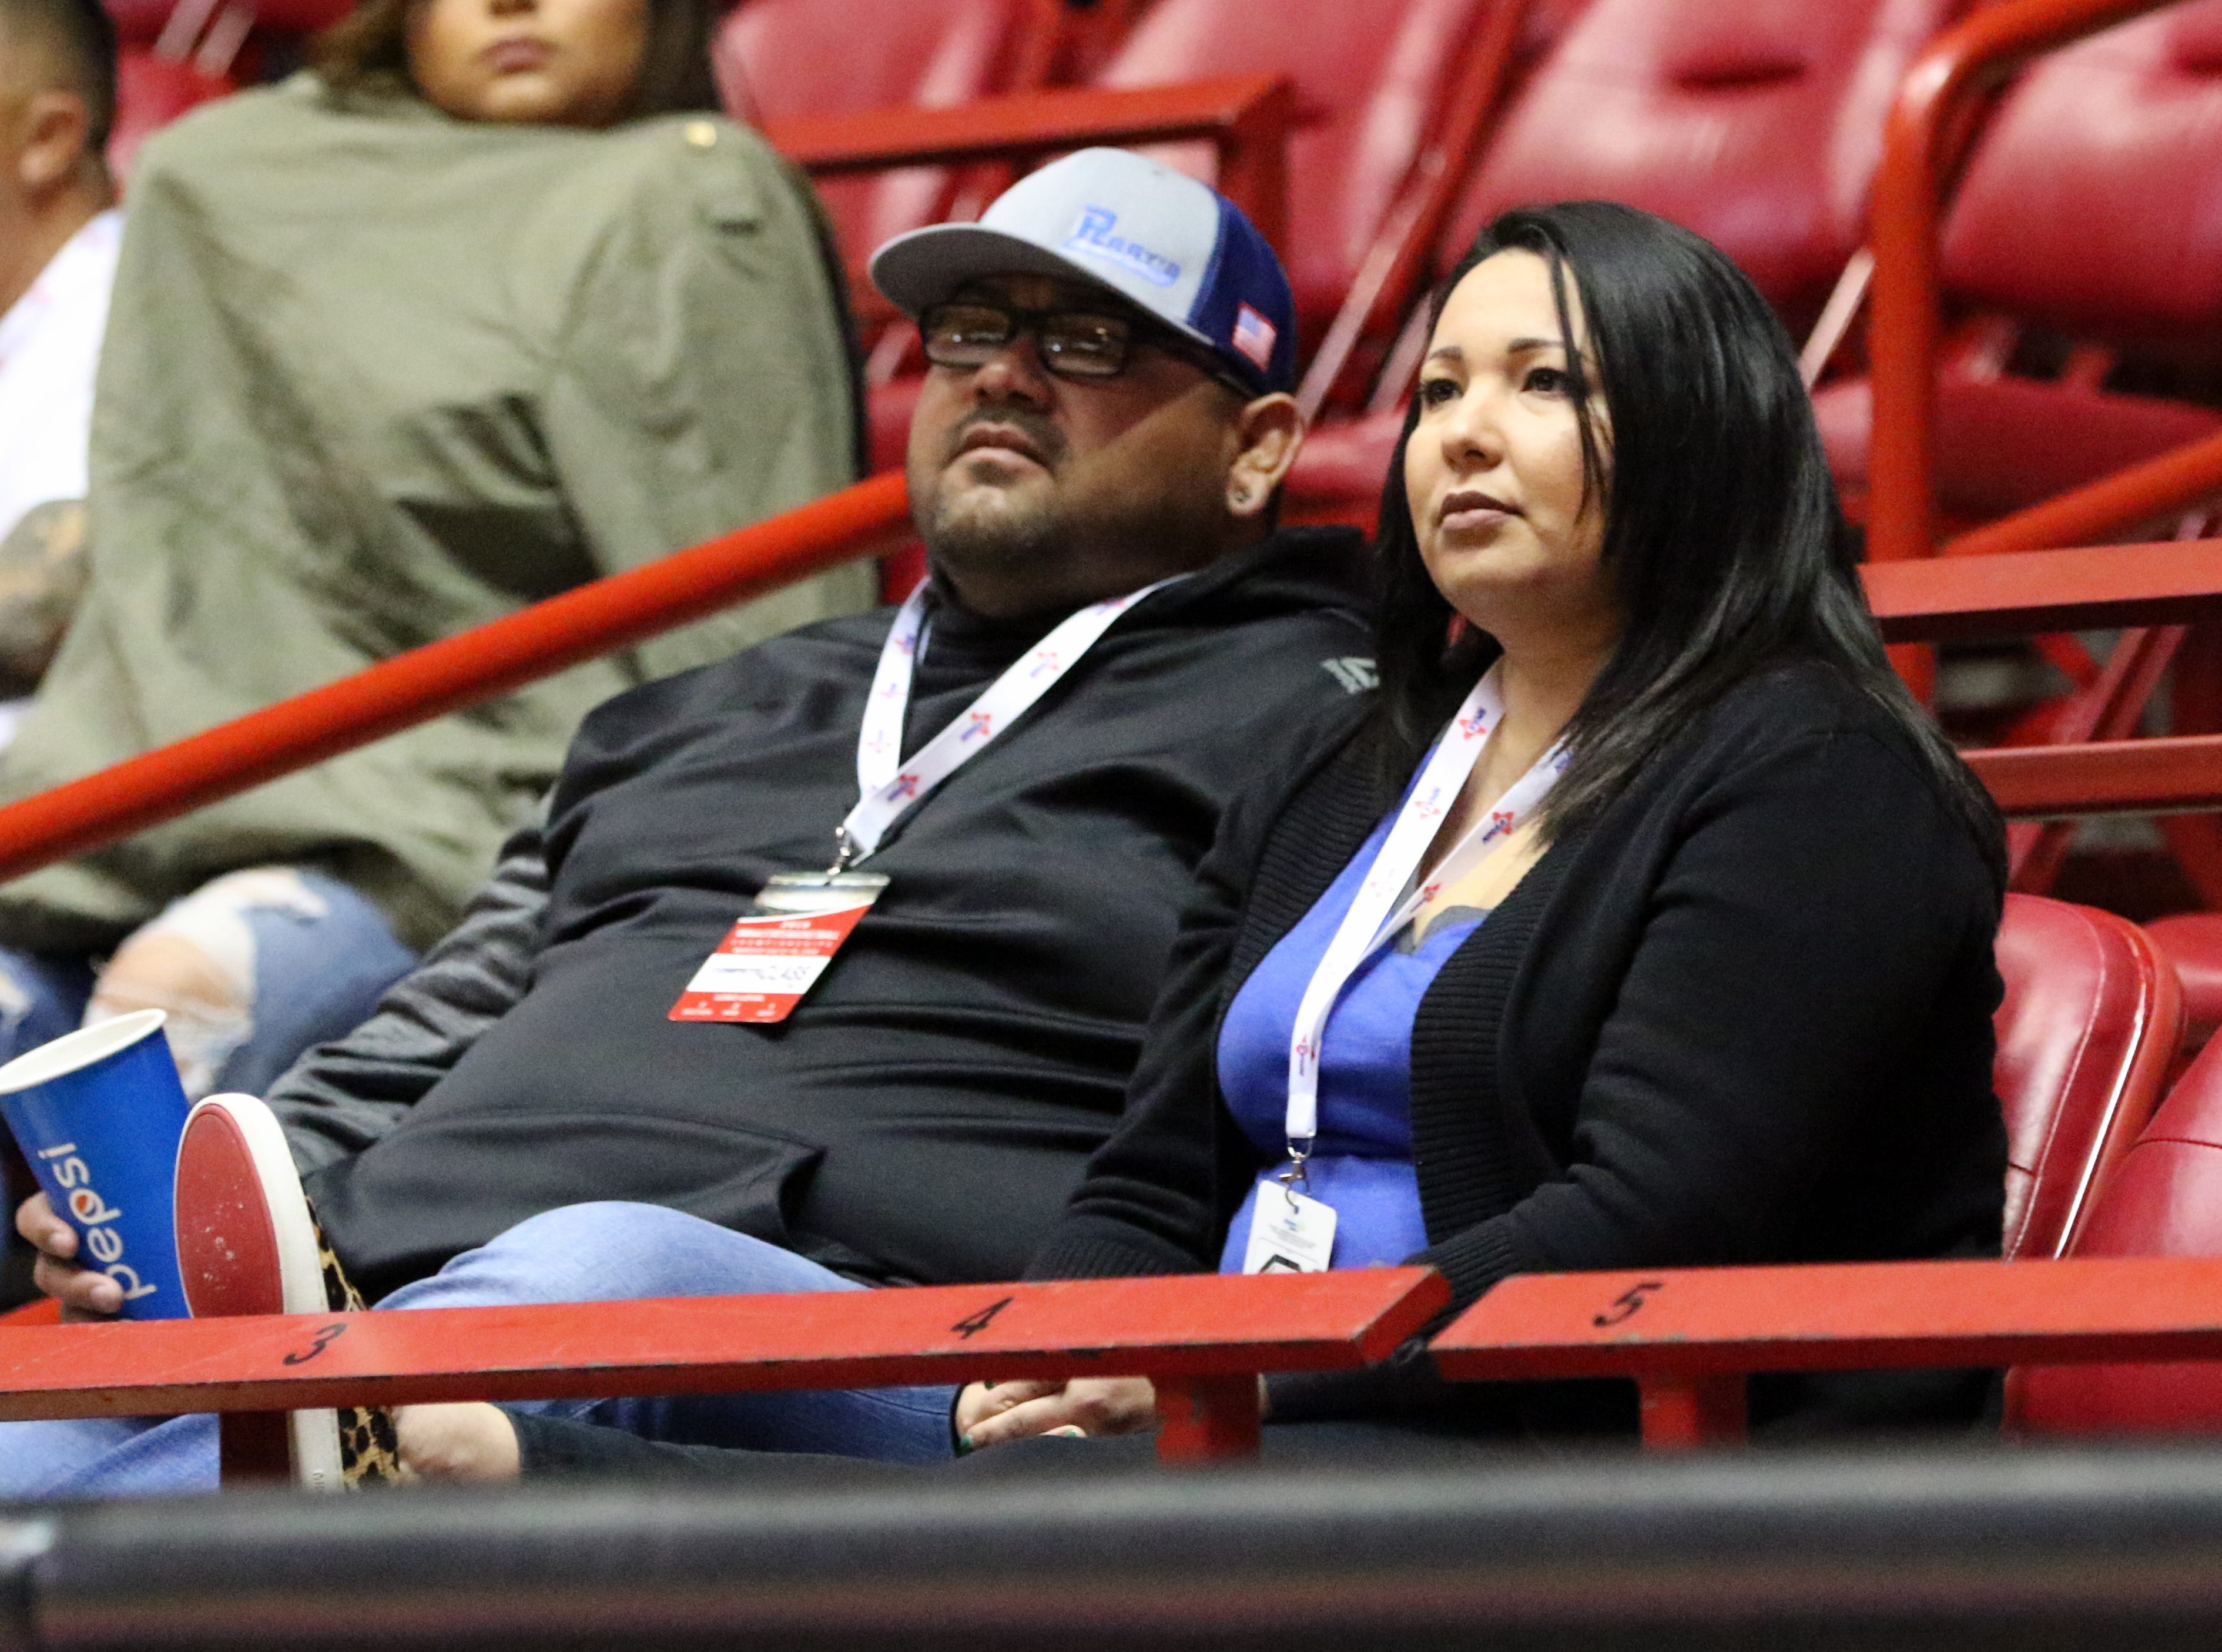 A couple of Carlsbad fans watch the Cavegirls play Volcano Vista in Tuesday's Class 5A quarterfinals game at The Pit. Carlsbad won, 41-39 in overtime.